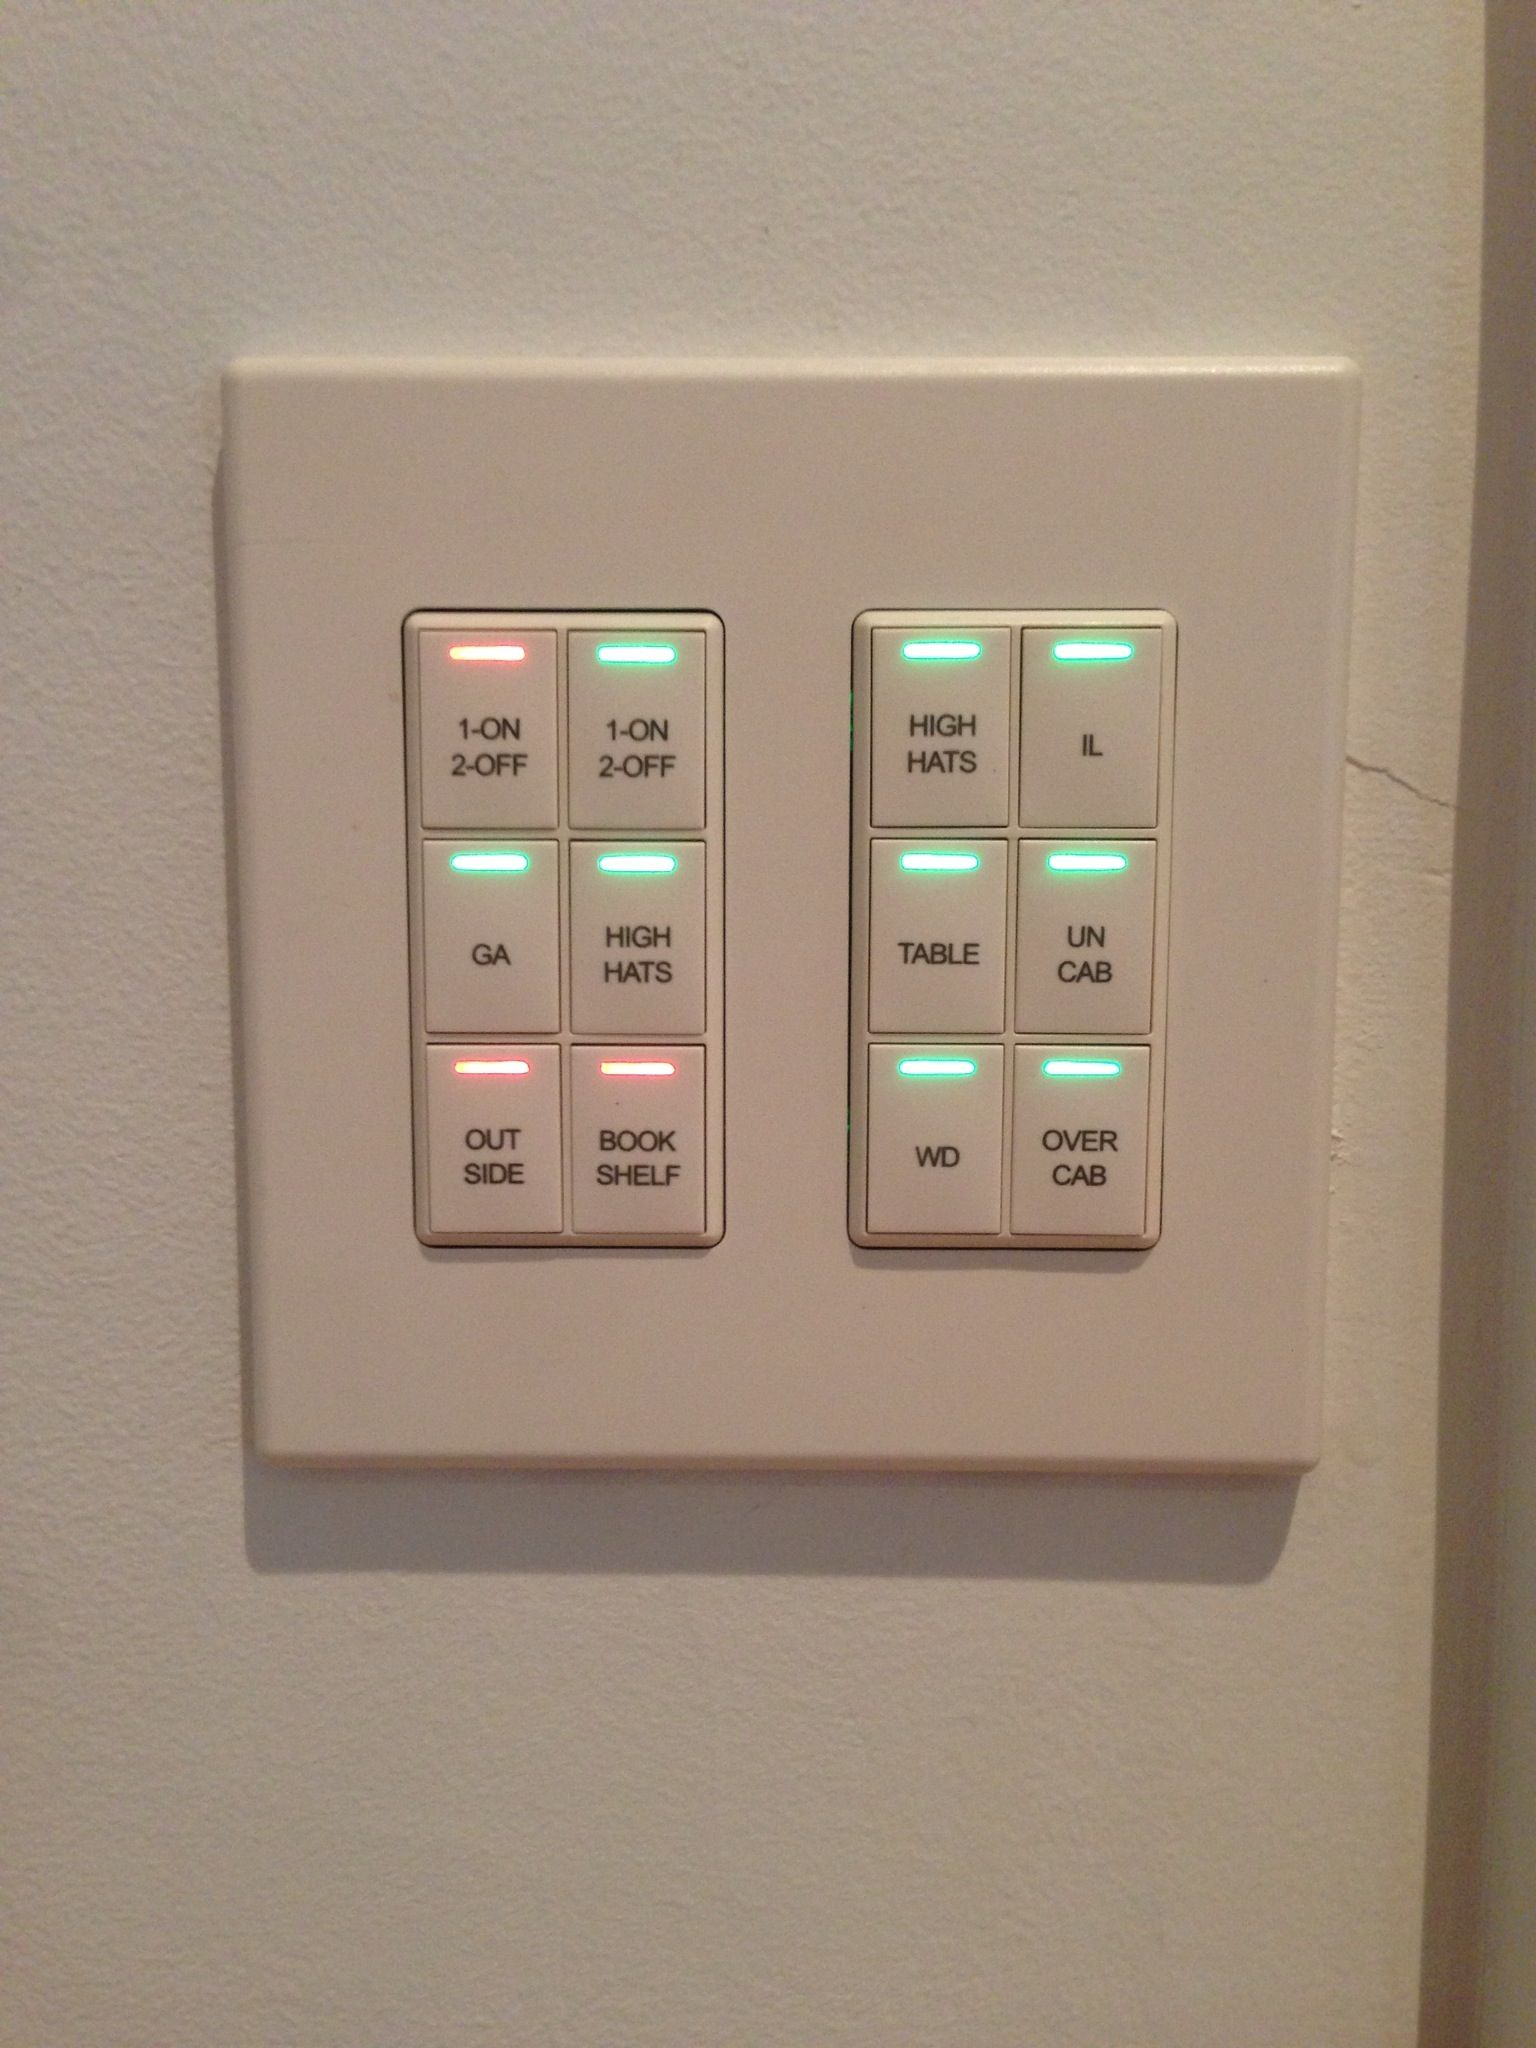 Control4 lighting Control keypads | Keypads in 2019 | Home